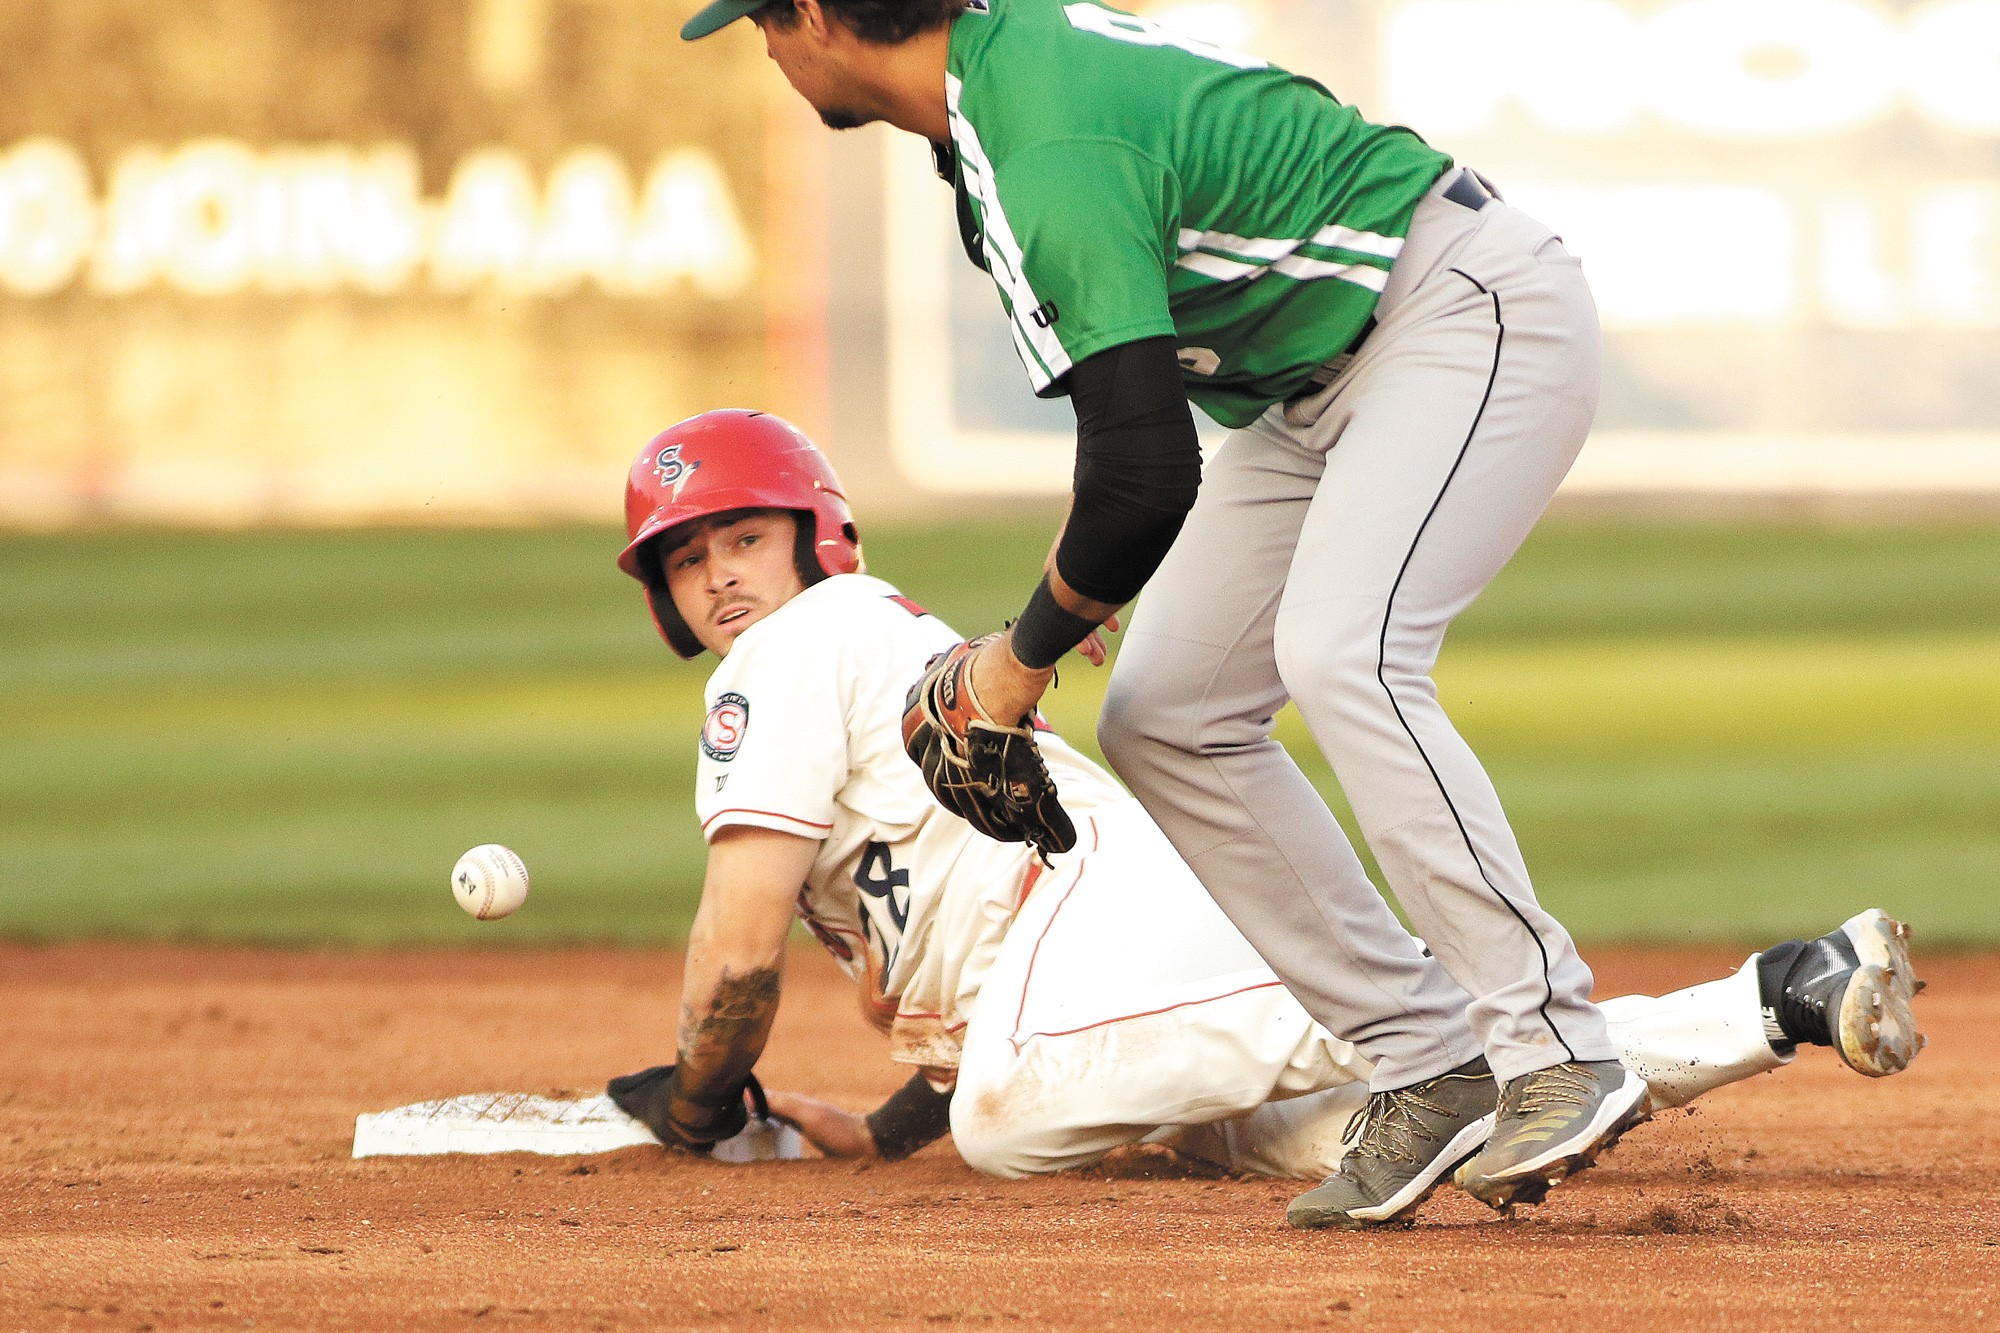 The Spokane Indians have home games against the Hillsboro Hops Aug. 19-22.